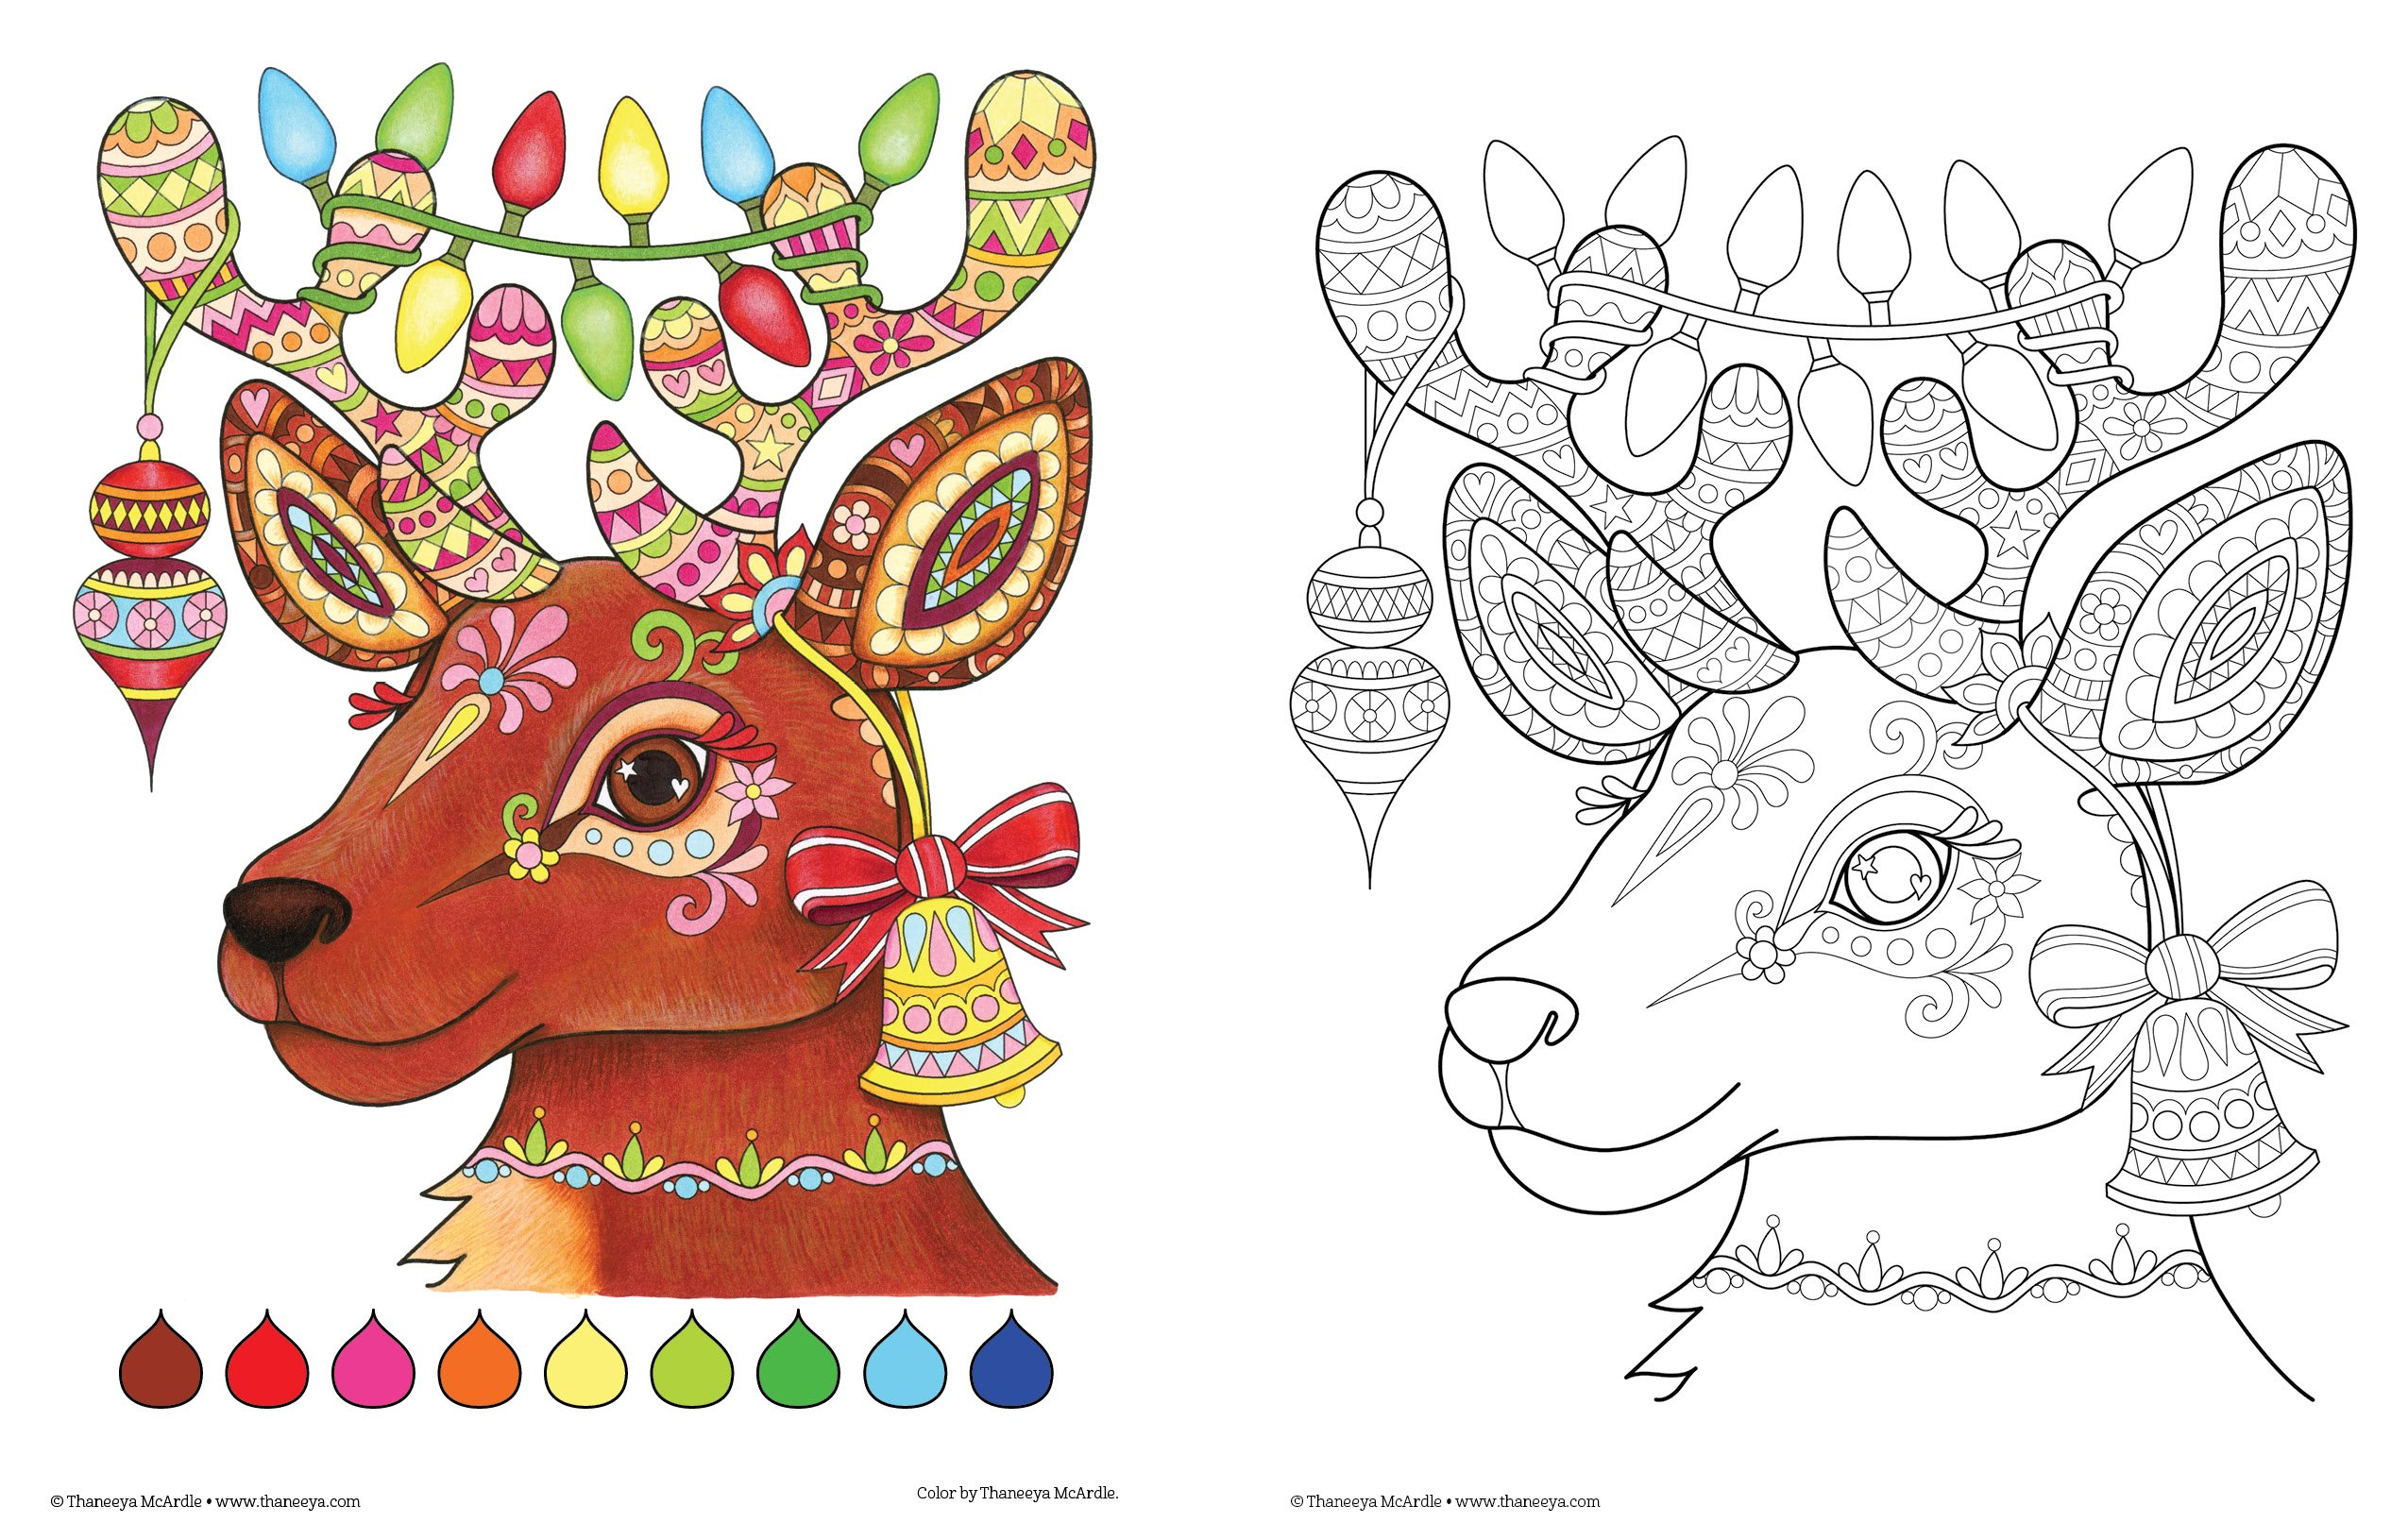 amazoncom christmas coloring book coloring is fun design originals 32 fun playful holiday art activities from thaneeya mcardle on high quality